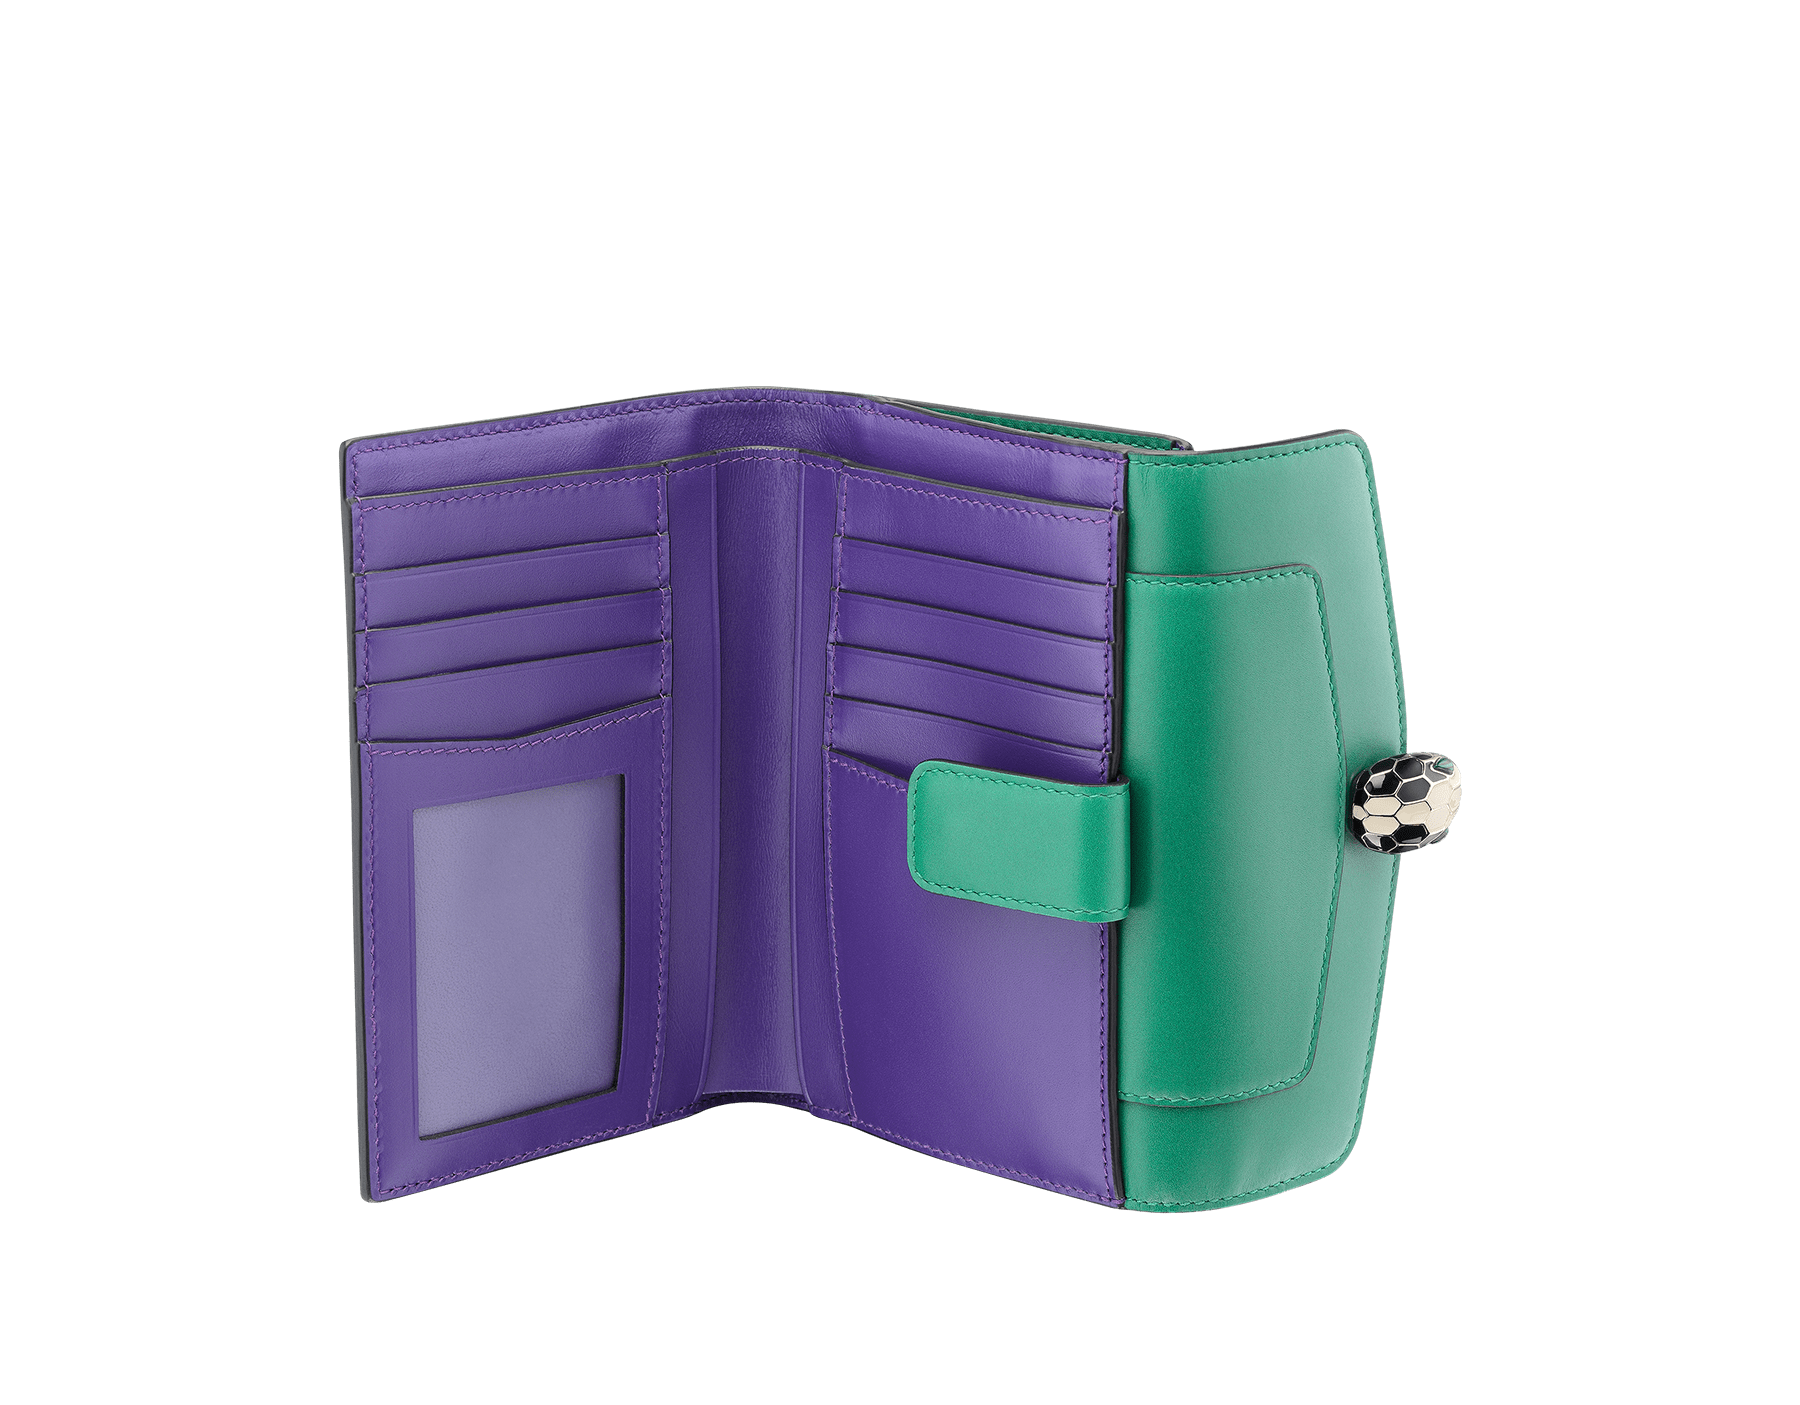 Compact pochette in emerald green calf leather, violet amethyst calf leather and amethyst purple nappa lining. Brass light gold plated Serpenti head stud closure with green malachite eyes. 282665 image 2